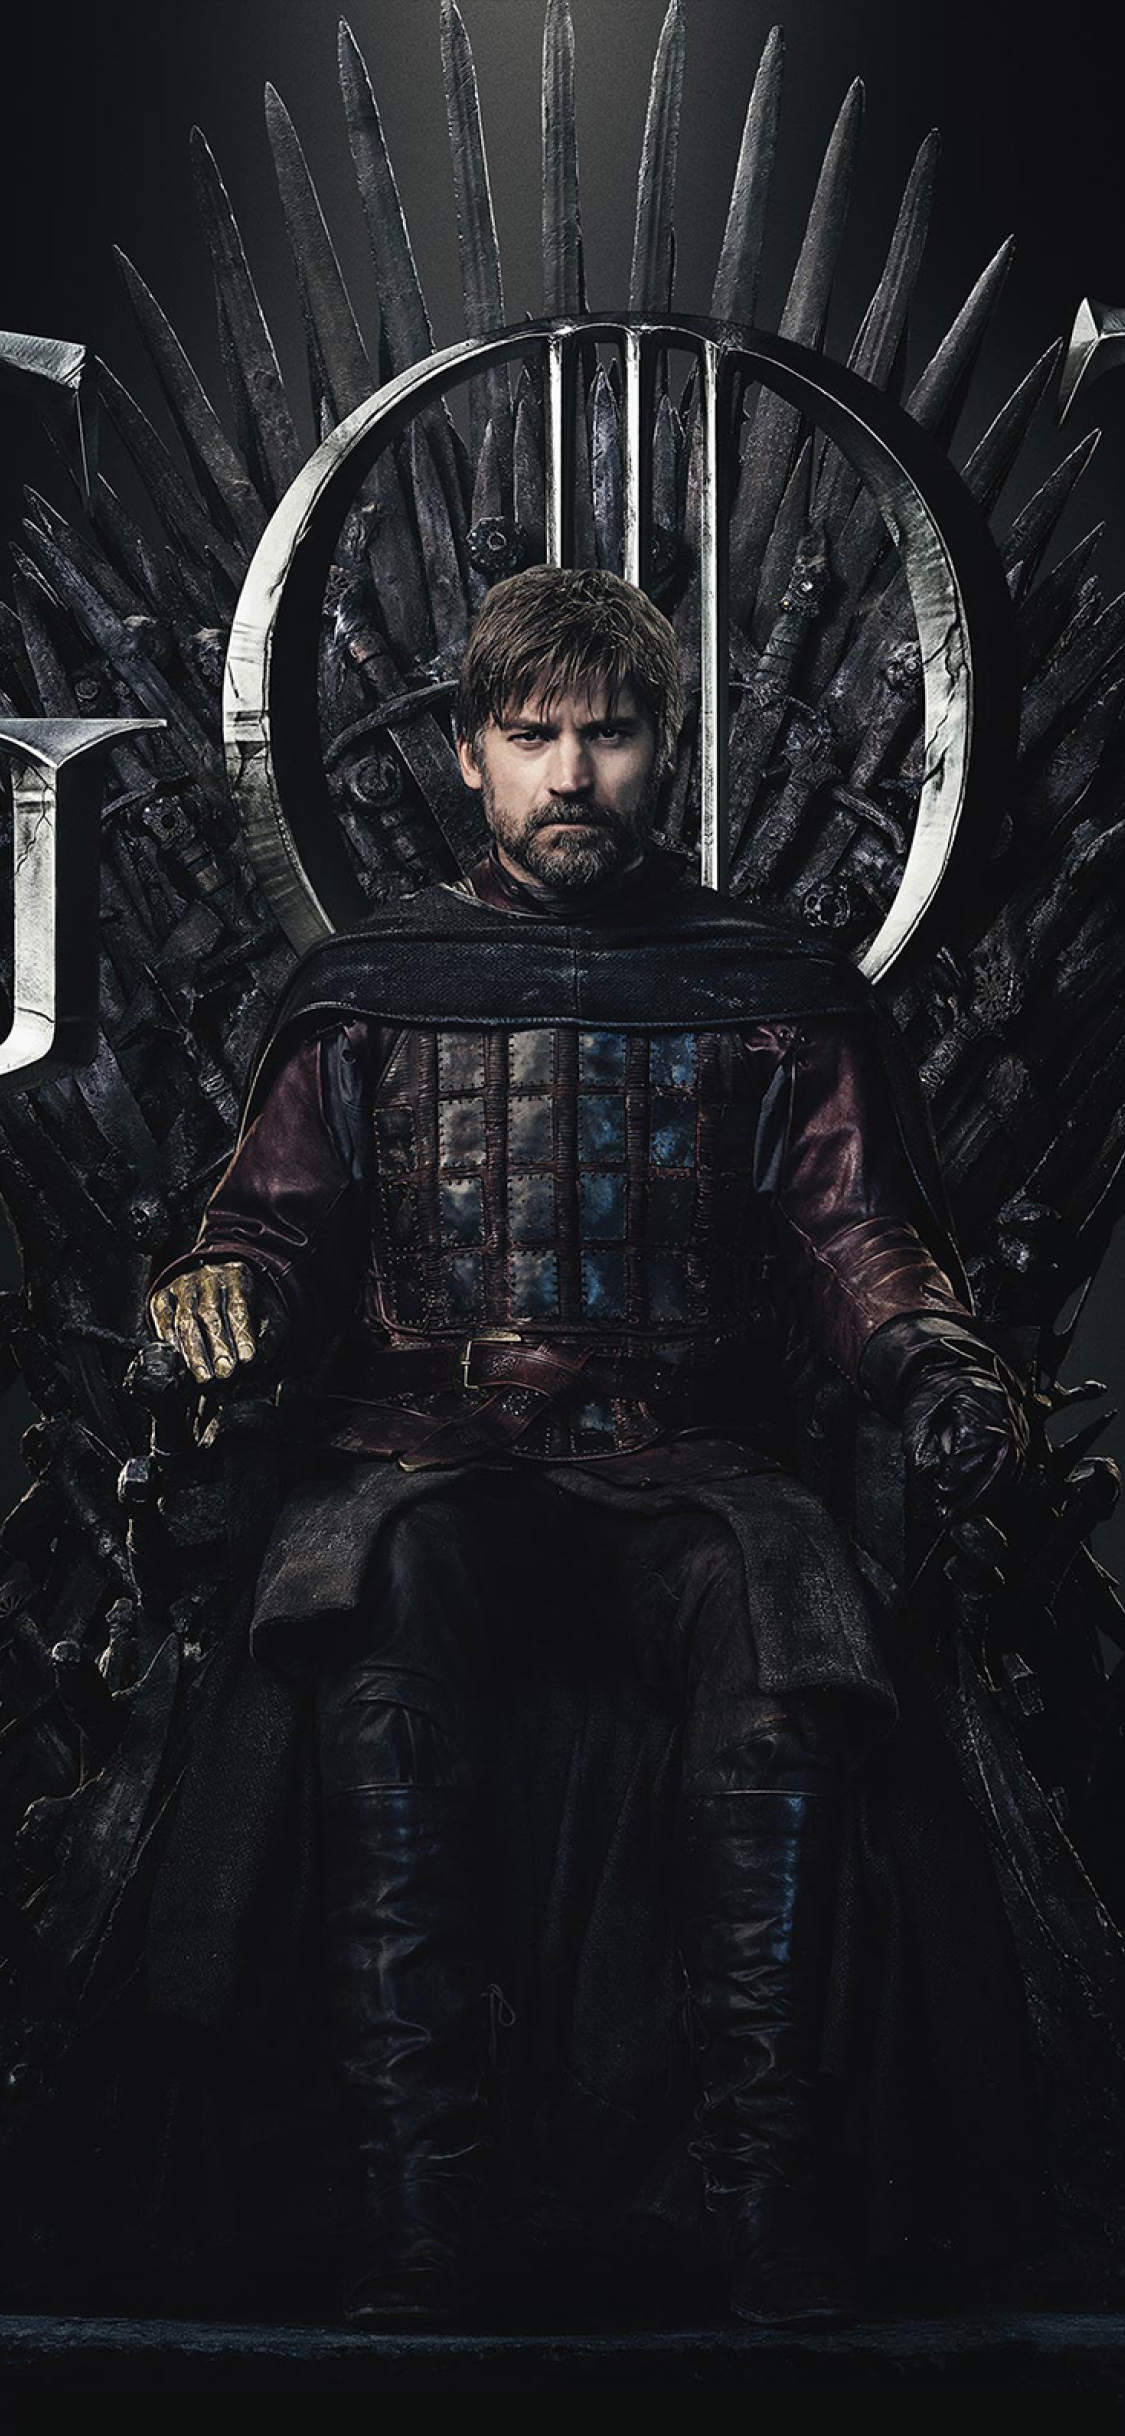 1125x2436 Jaime Lannister Game Of Thrones Season 8 Poster